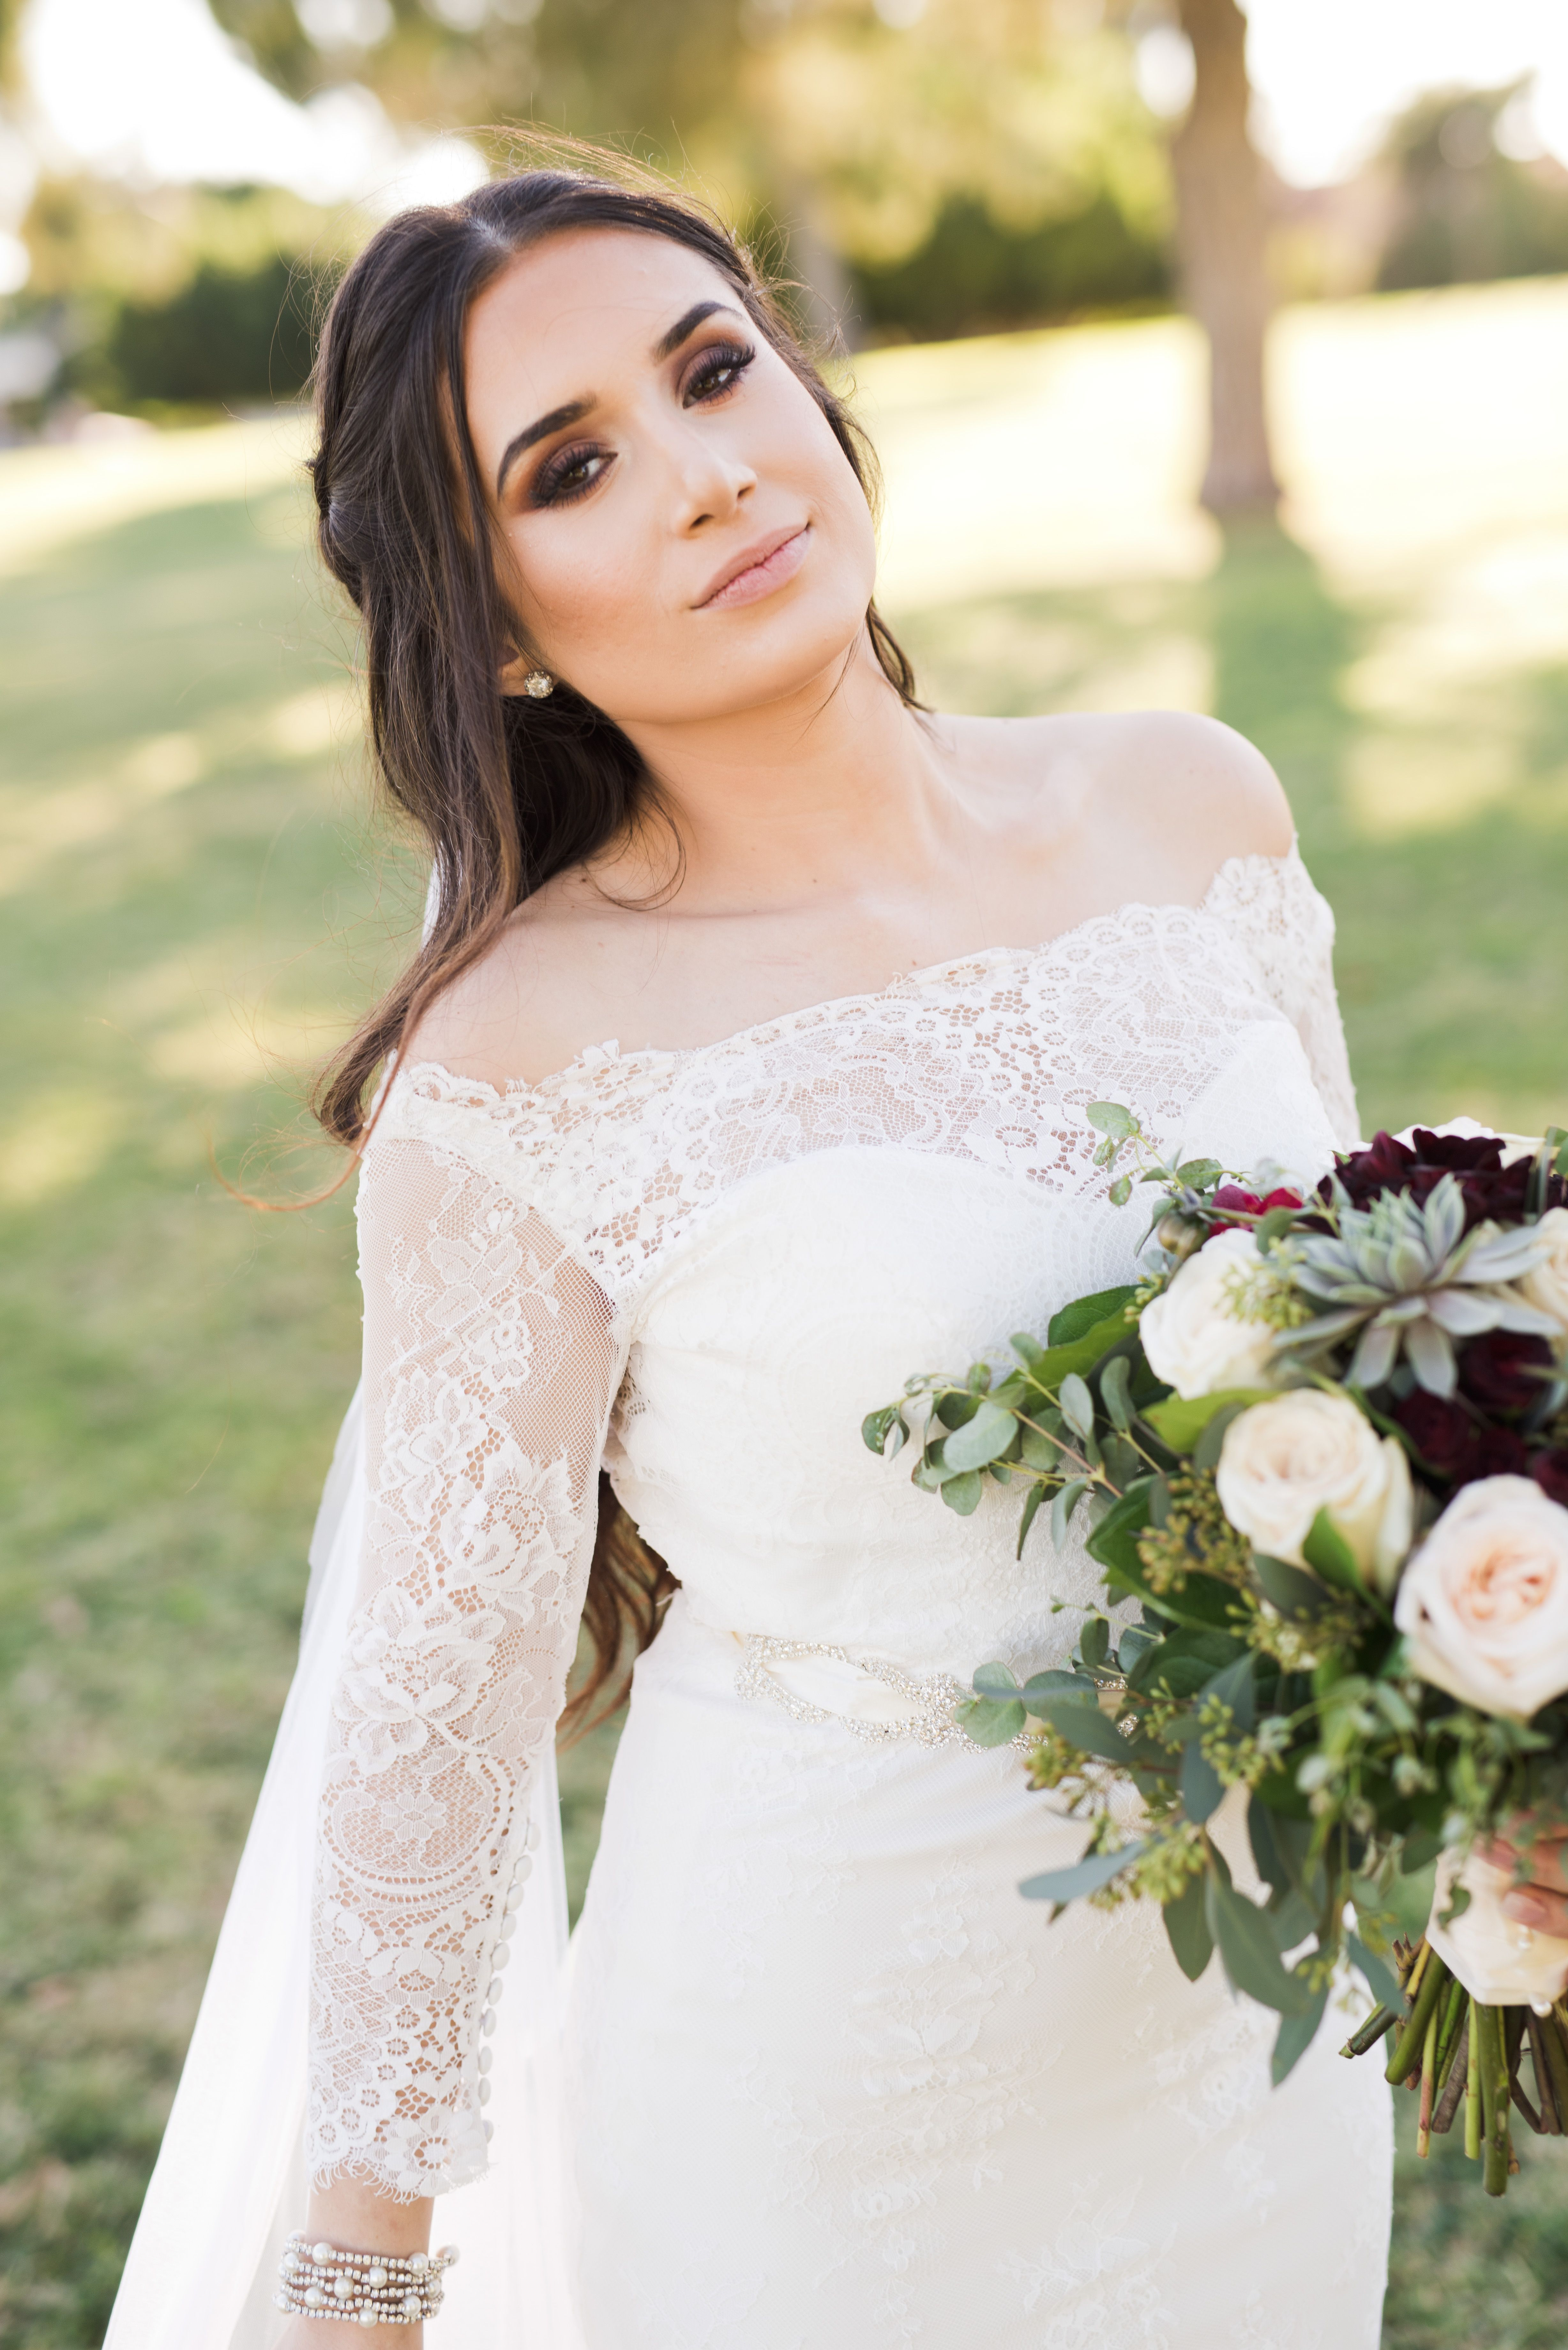 Fall outdoor wedding dresses  Beautiful off the shoulder bridal dress  Arizona Wedding